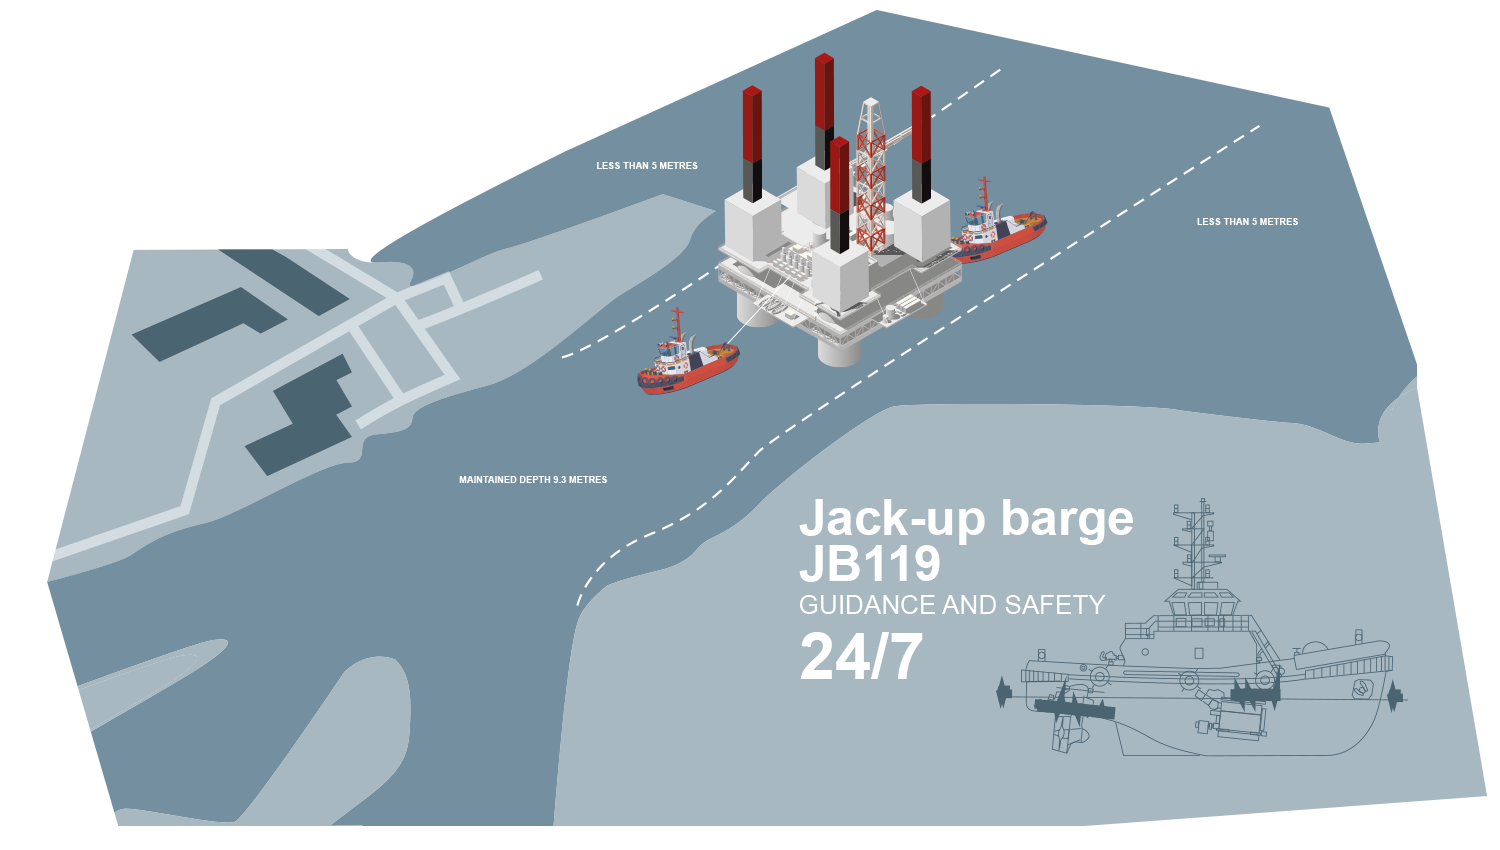 Jack-up Barge Guidance